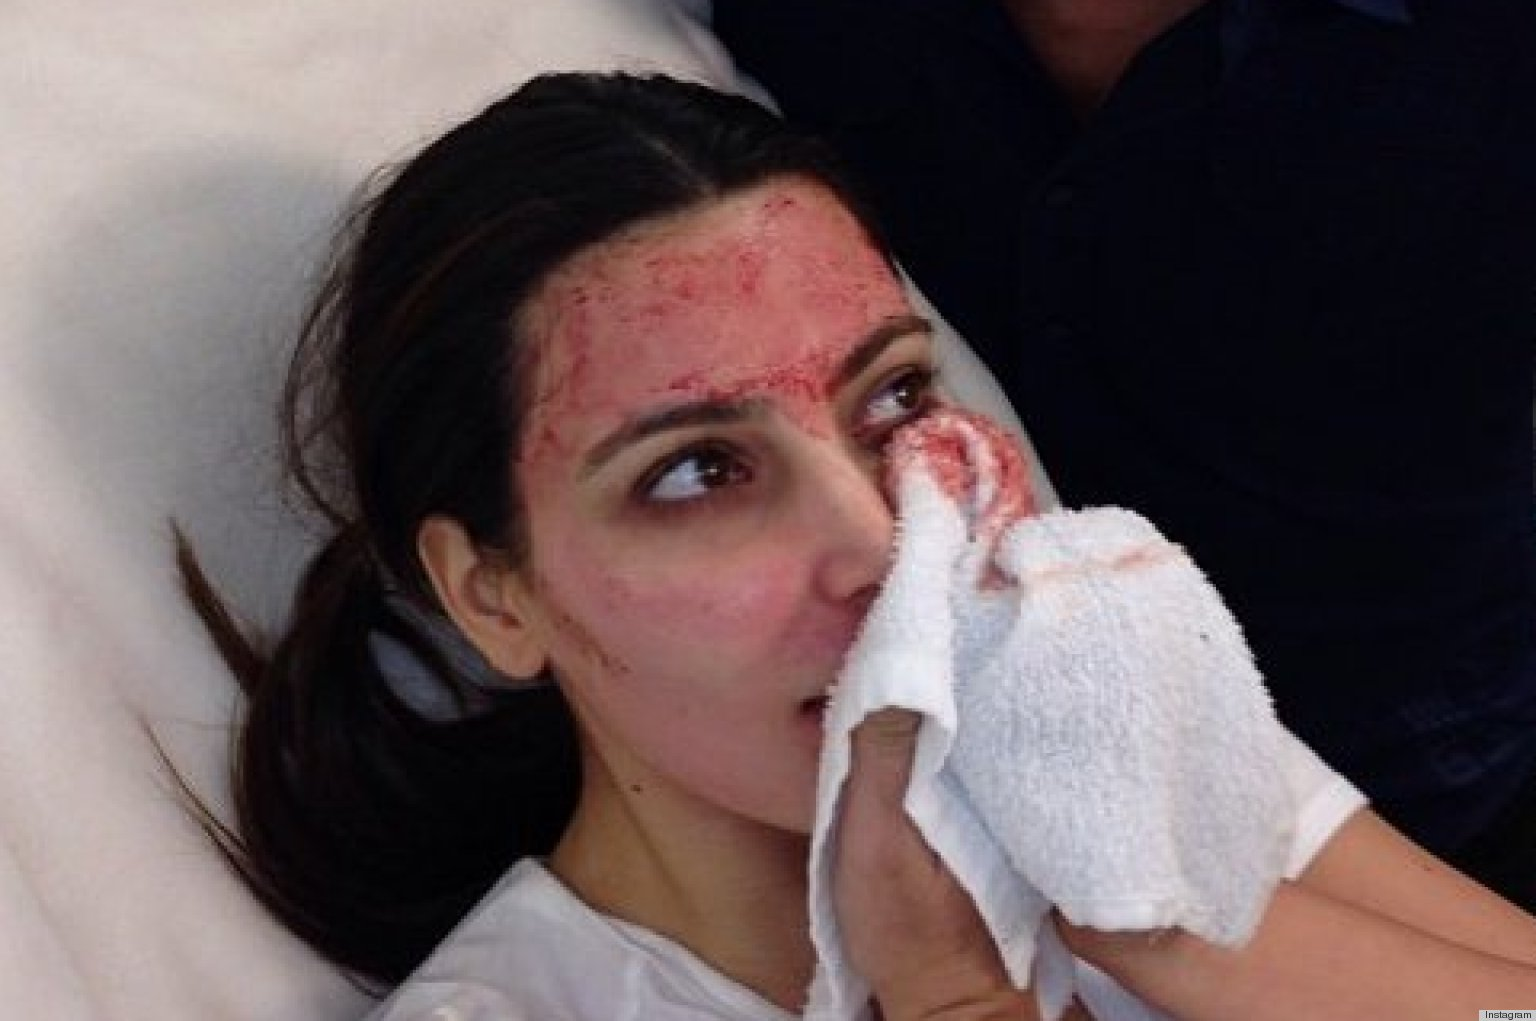 KIM-KARDASHIAN-BLOOD-FACIAL-facebook.jpg